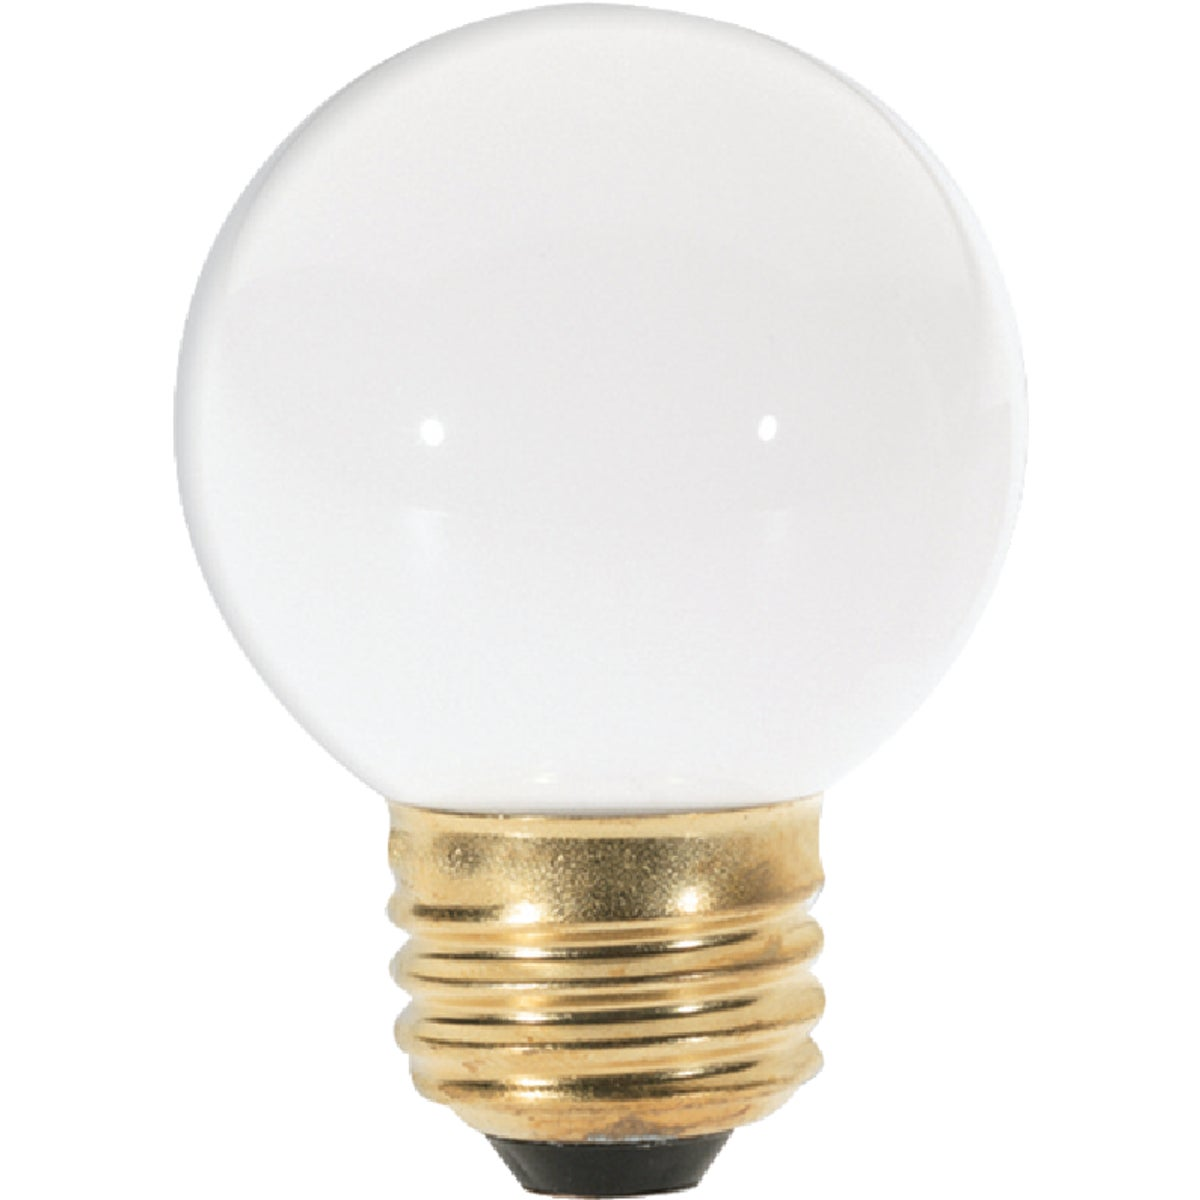 25W WHITE GLOBE BULB - 31107 by G E Lighting